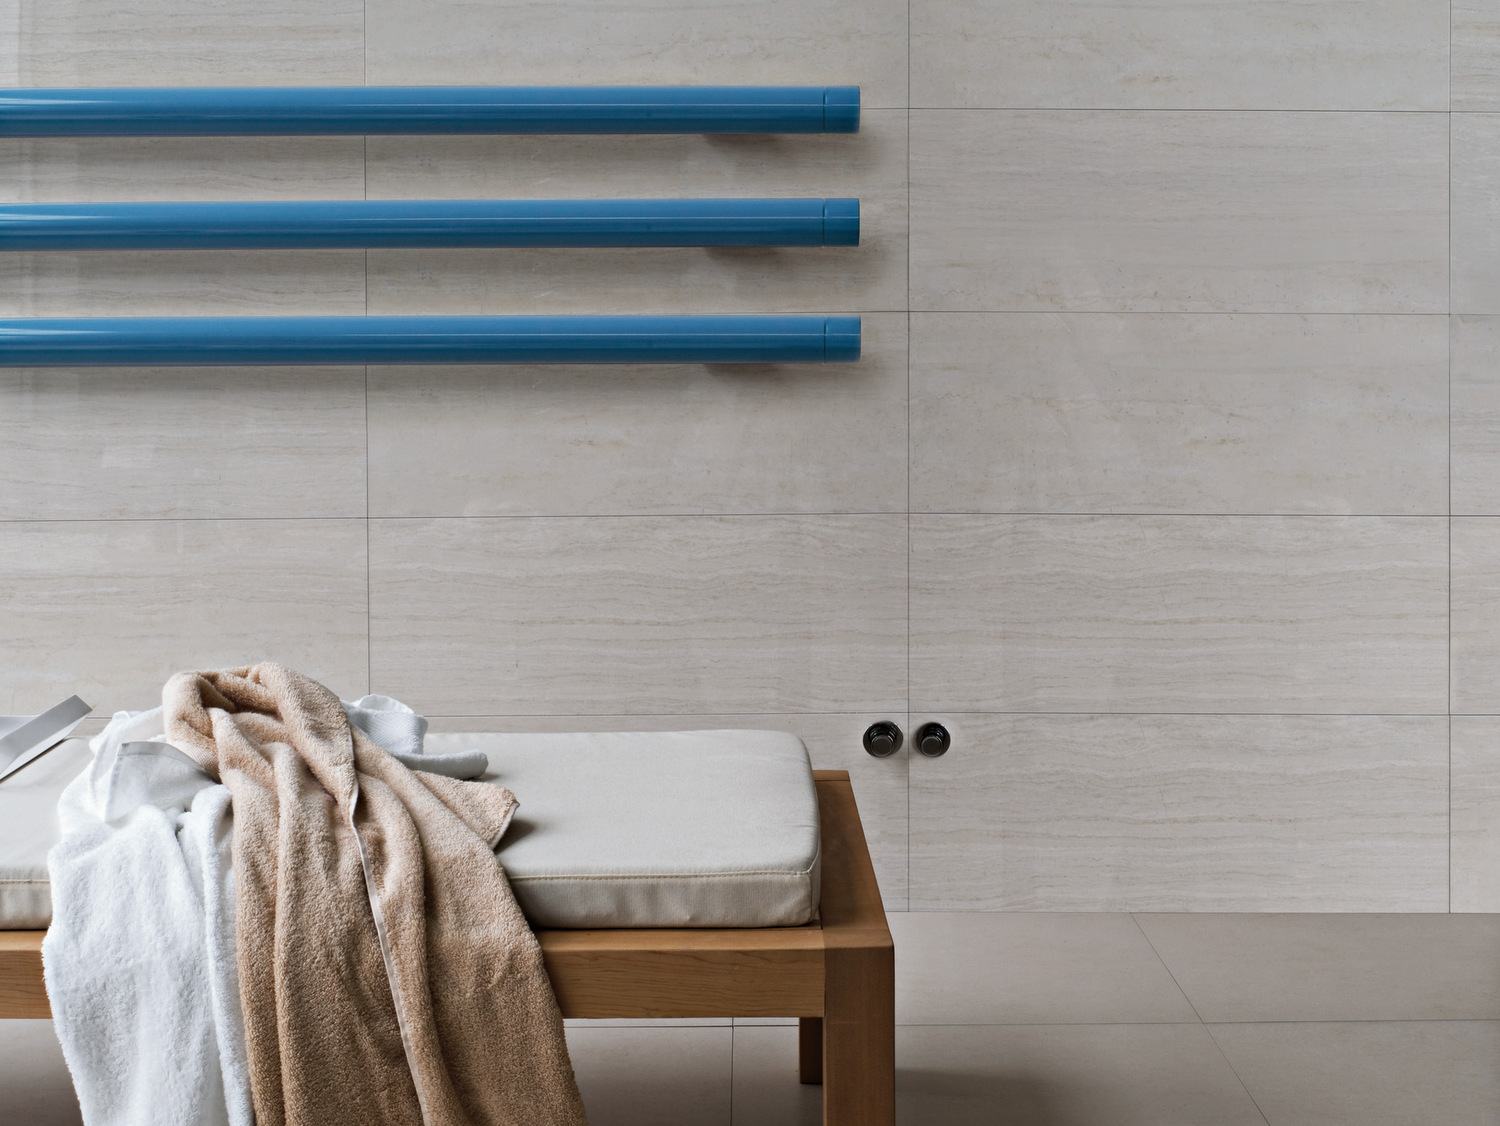 horizontal-wall-mounted-decorative-radiator1